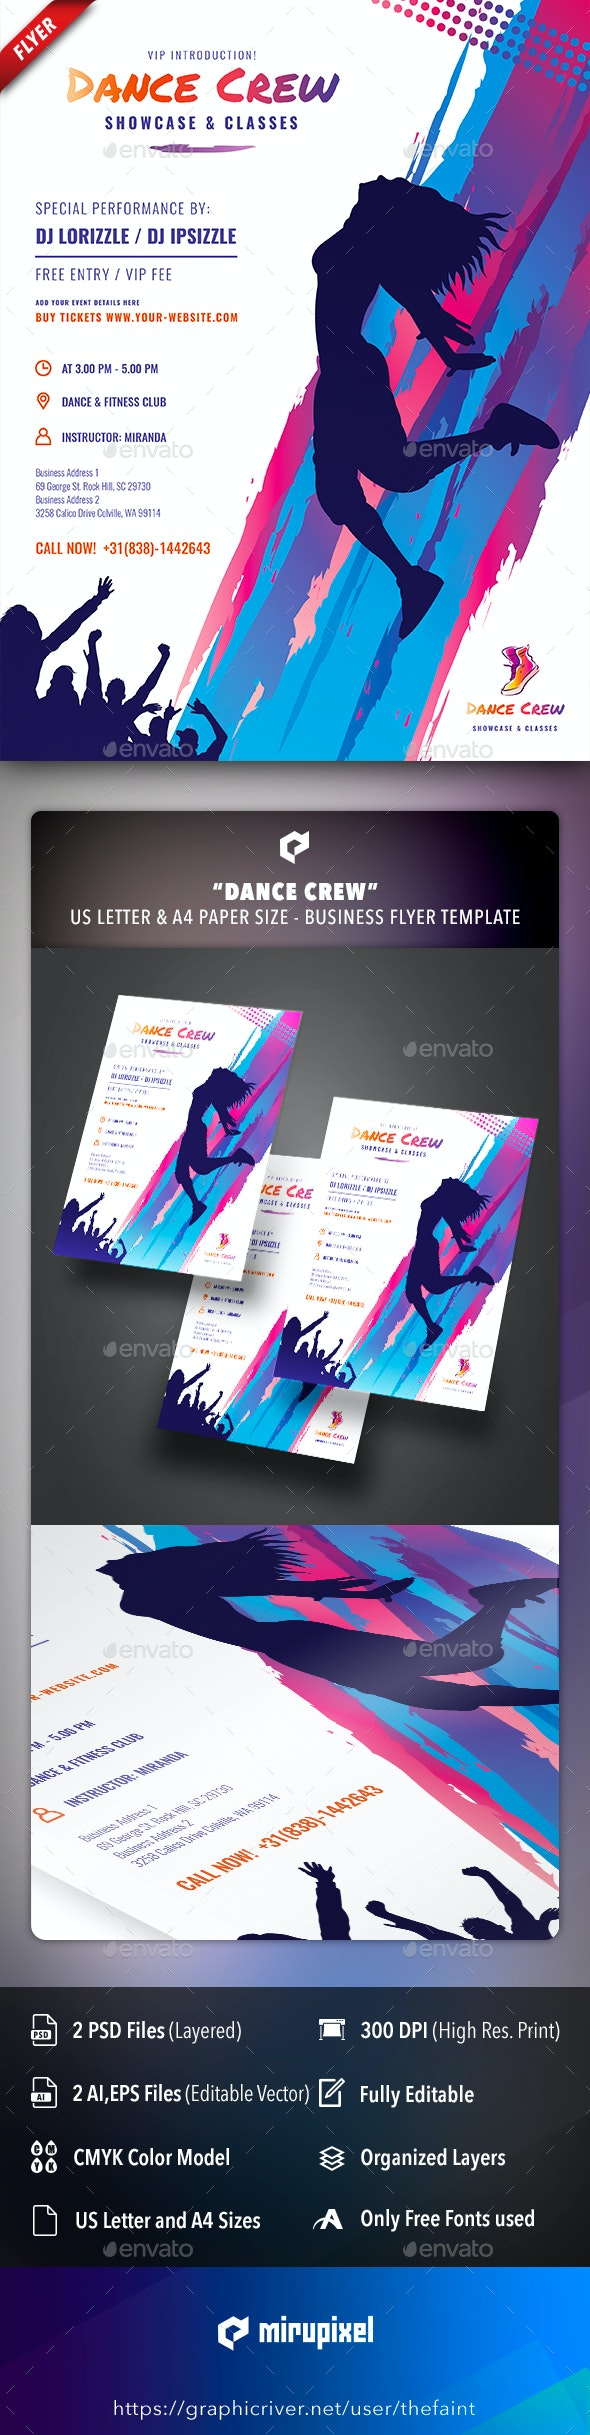 Dance Crew Business Flyer - Commerce Flyers